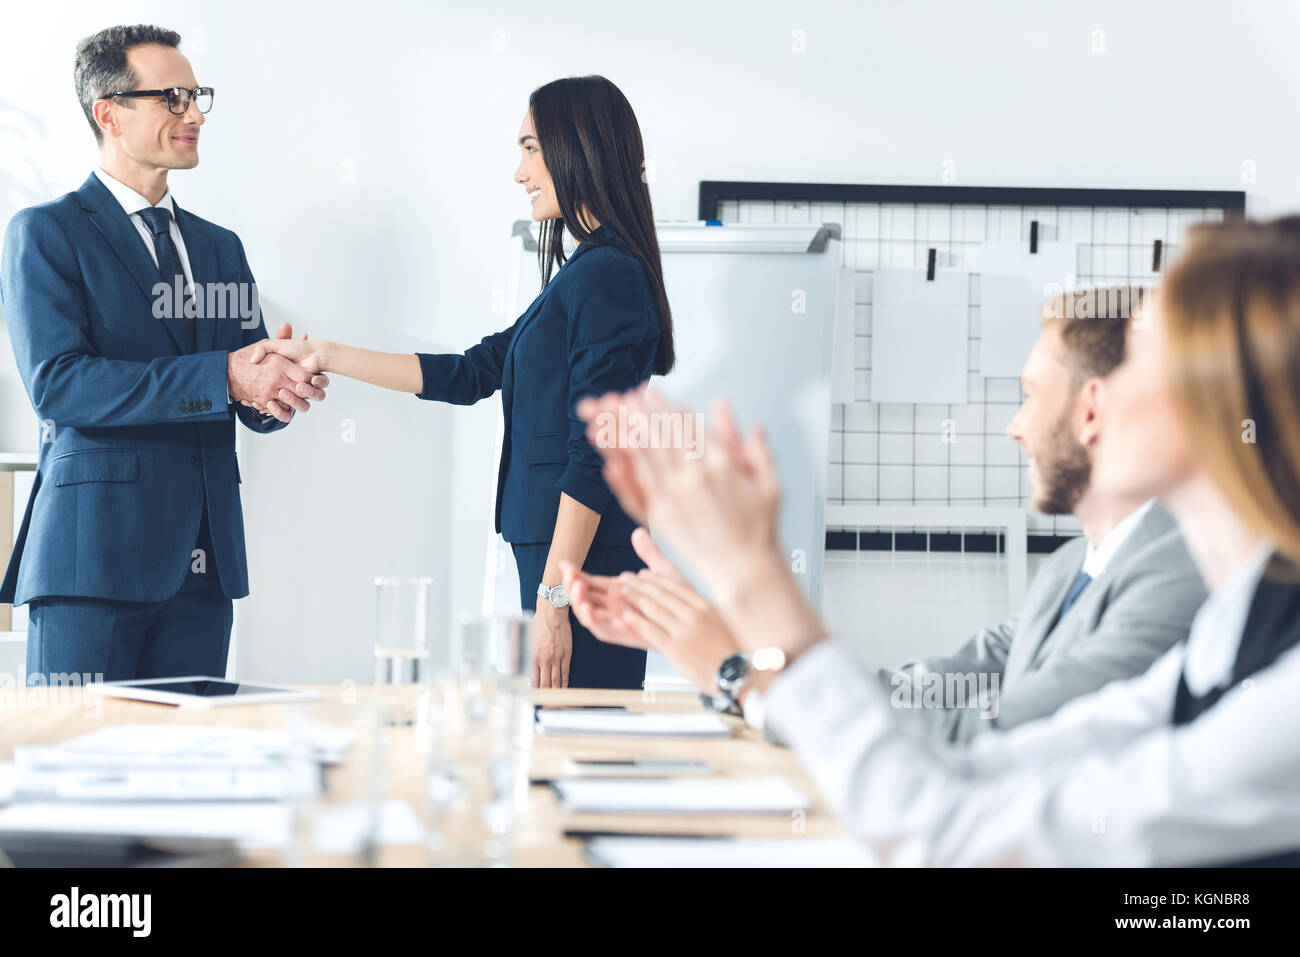 boss shaking hand of manageress - Stock Image